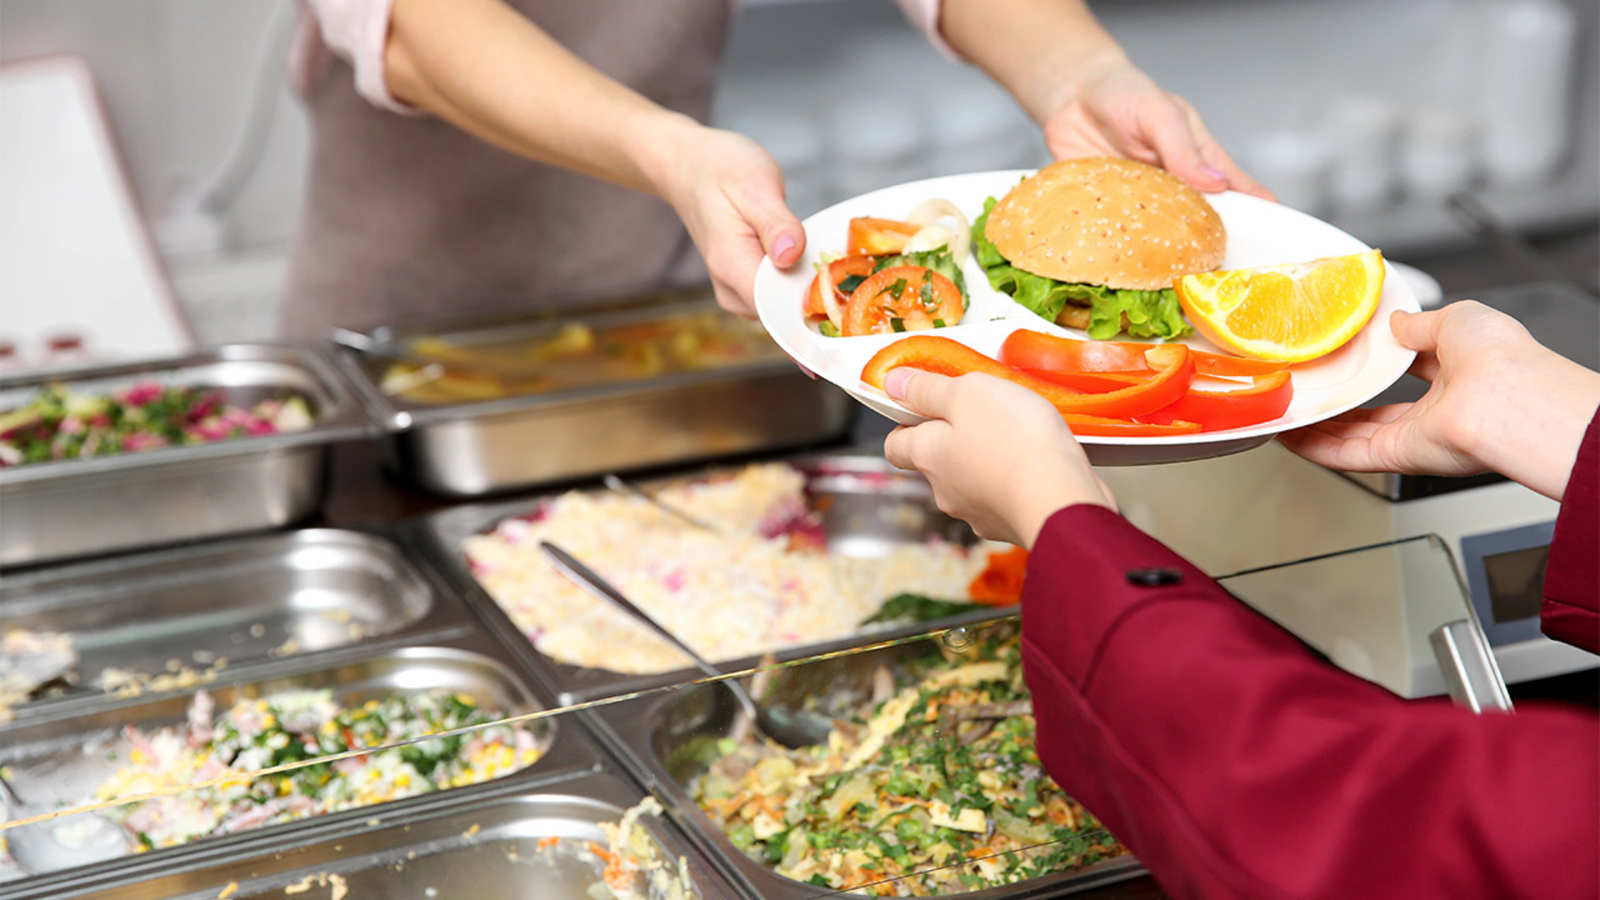 Cherry Hill students with unpaid meals could be denied lunches